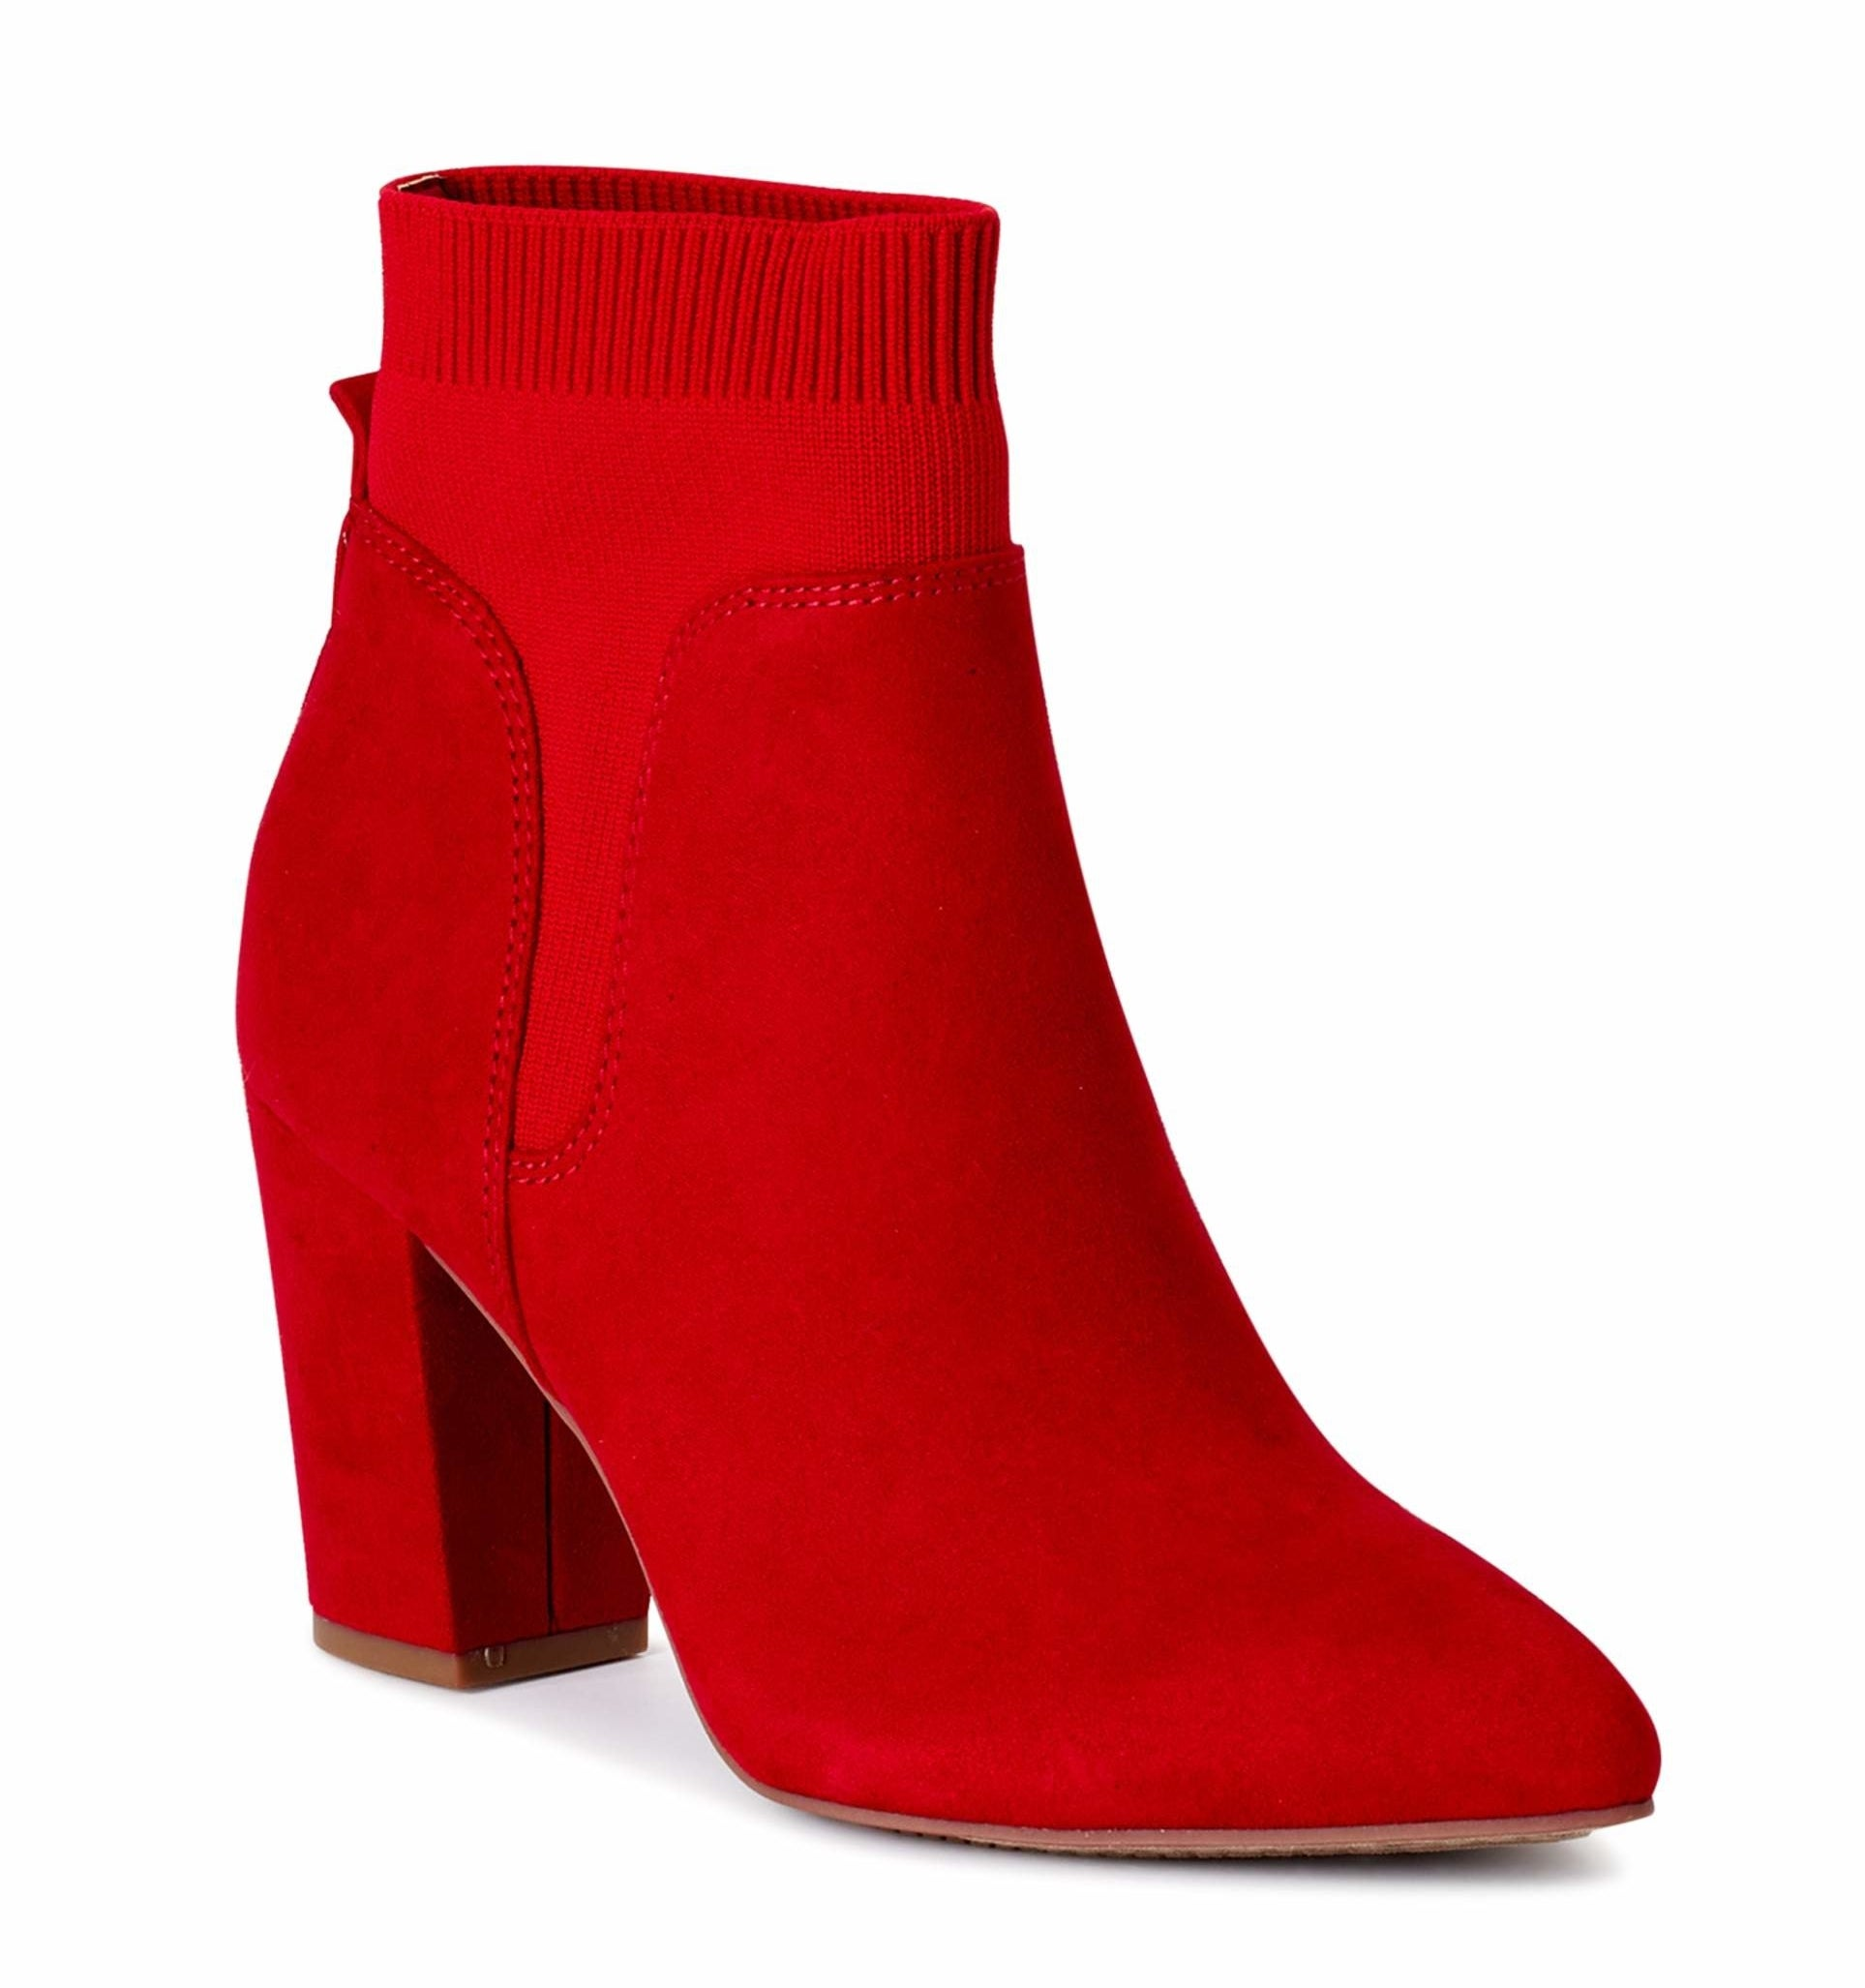 A pair of red booties